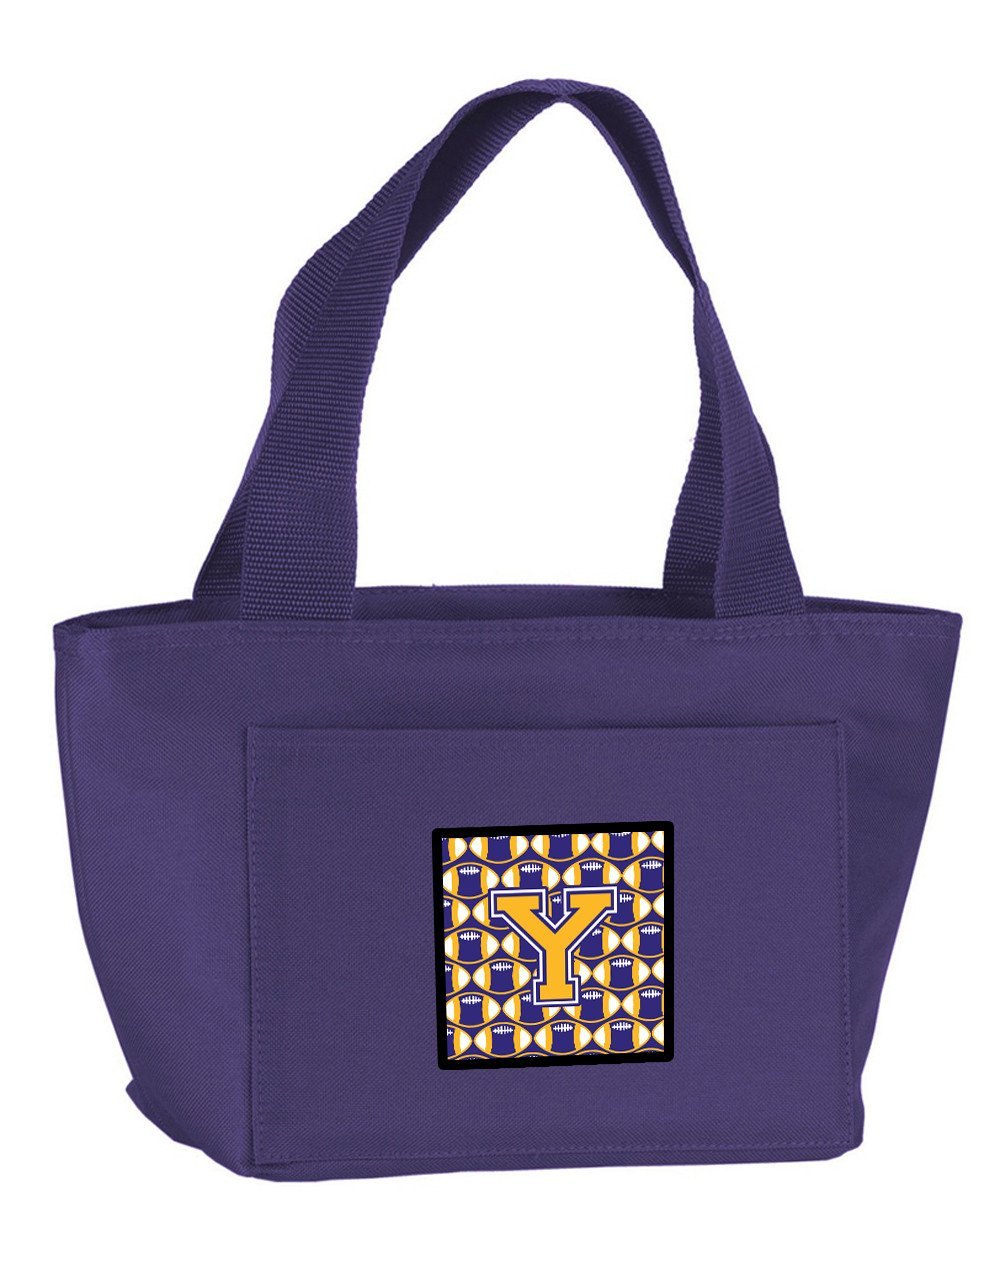 Letter Y Football Purple and Gold Lunch Bag CJ1064-YPR-8808 by Caroline's Treasures